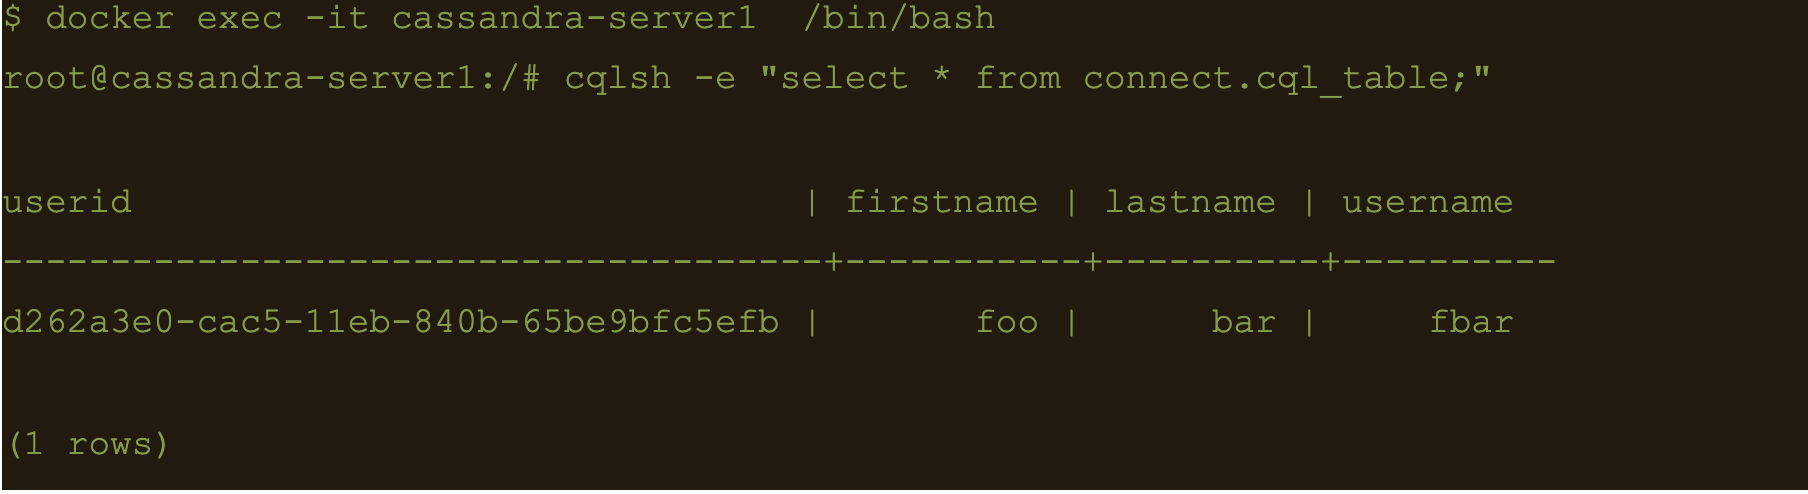 select * from connect.cql_table;